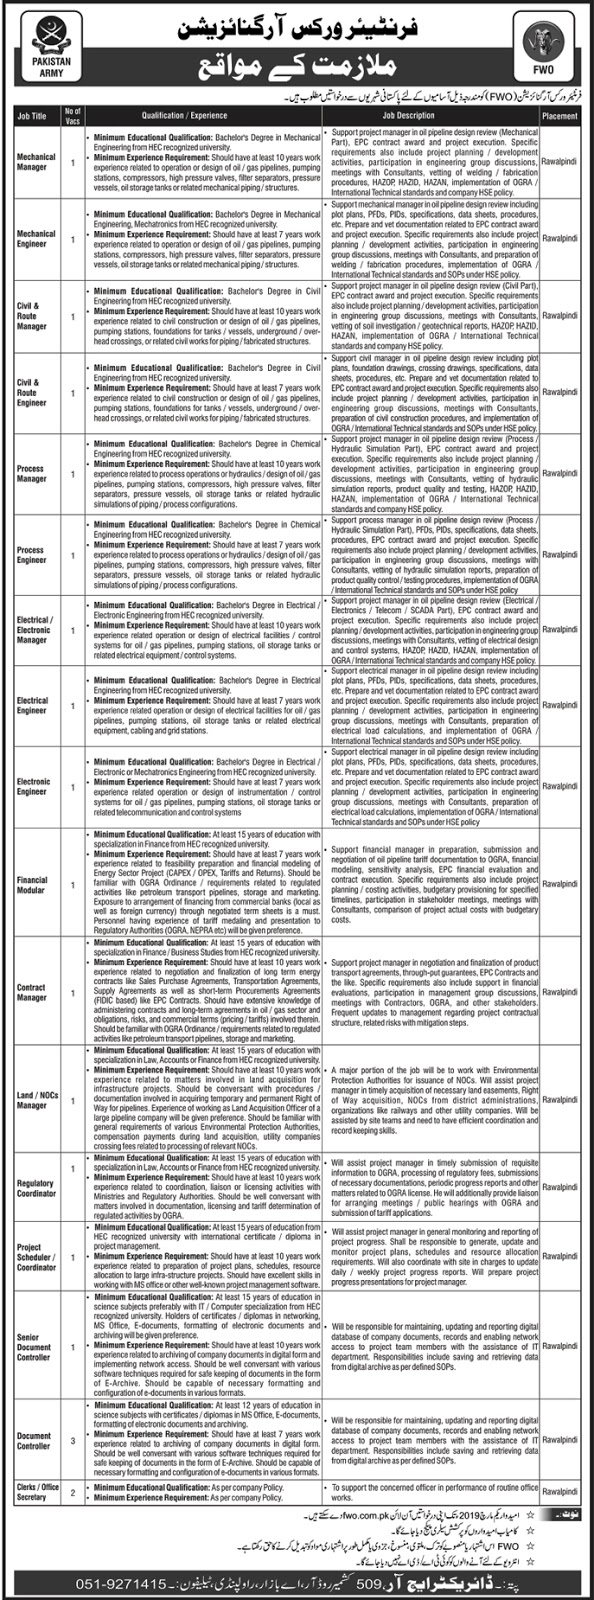 Pakisatn Army jobs in Frontier Works Organization (FWO) Joba February 2019